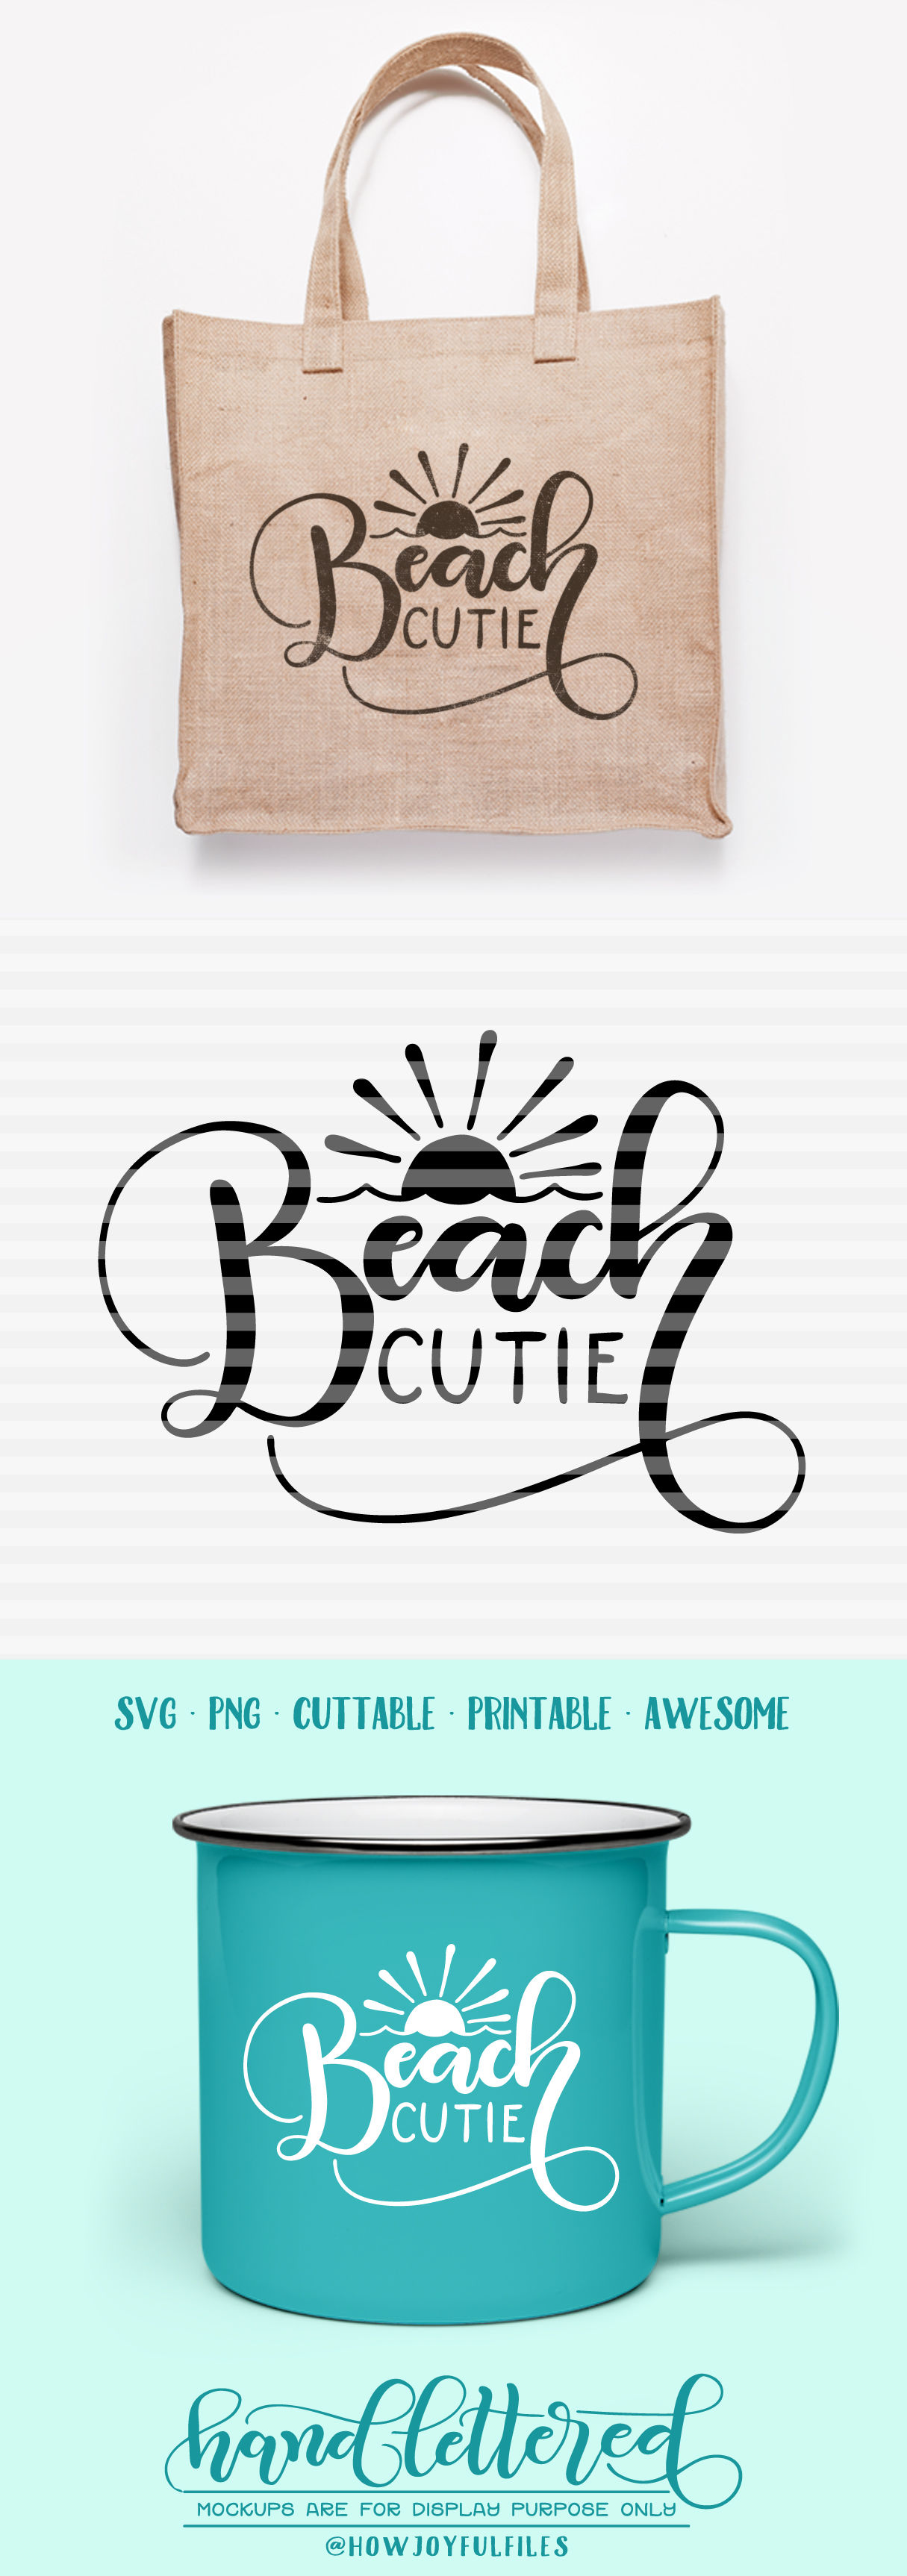 Beach Cutie Svg Pdf Dxf Hand Drawn Lettered Cut File Graphic Overlay By Howjoyful Files Thehungryjpeg Com